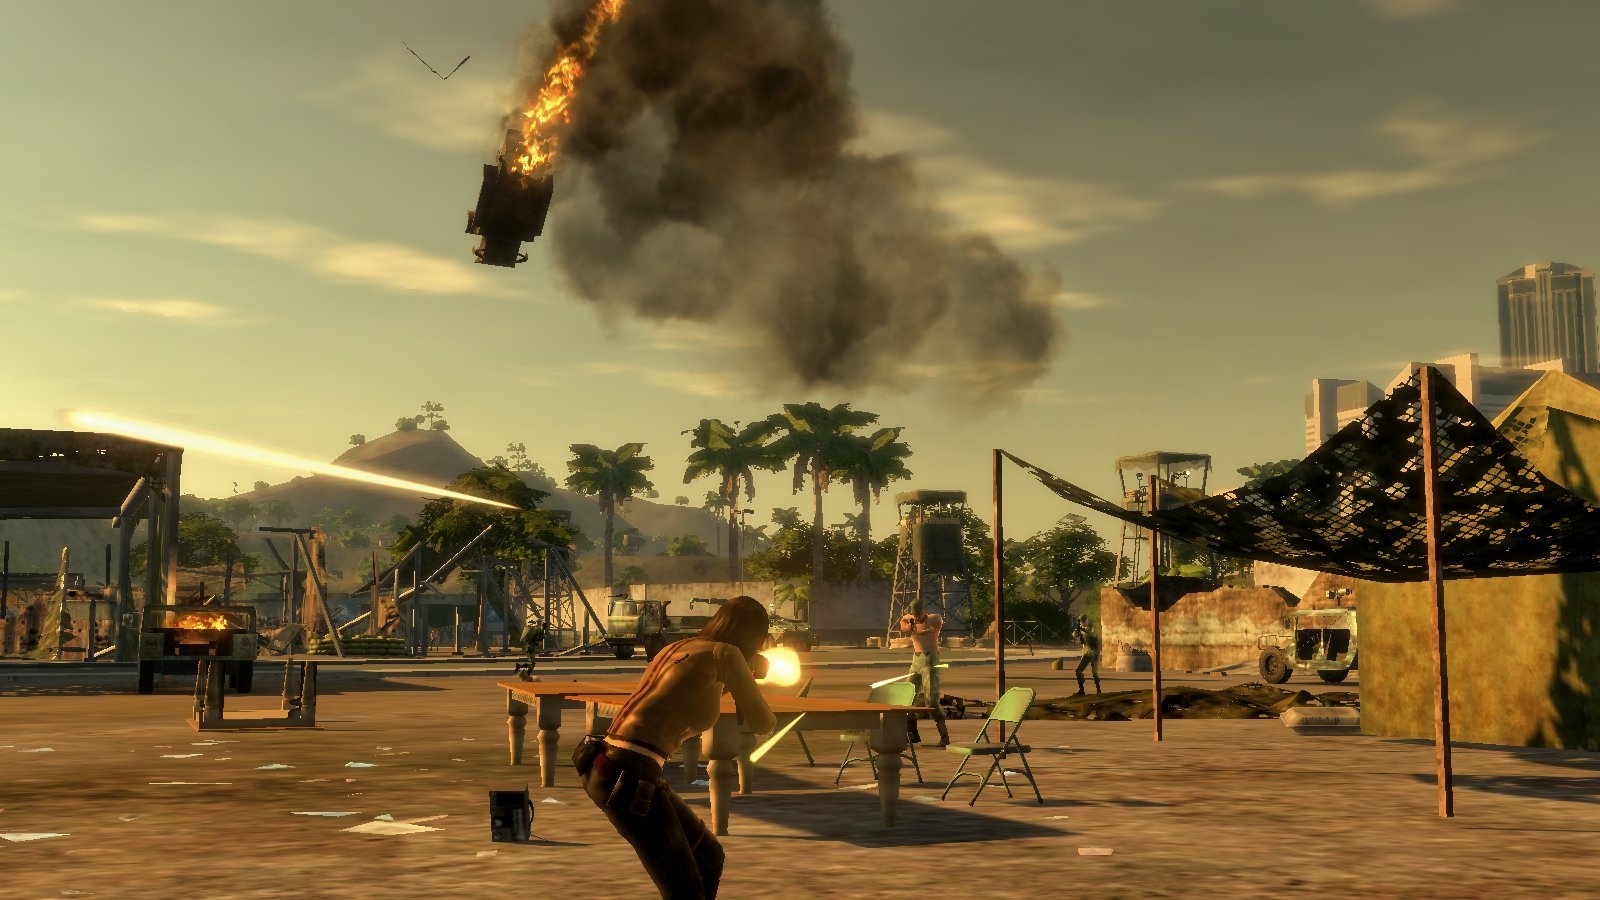 Mercenaries 2 world in flames screenshots video game news videos go full size 1600x900 altavistaventures Choice Image